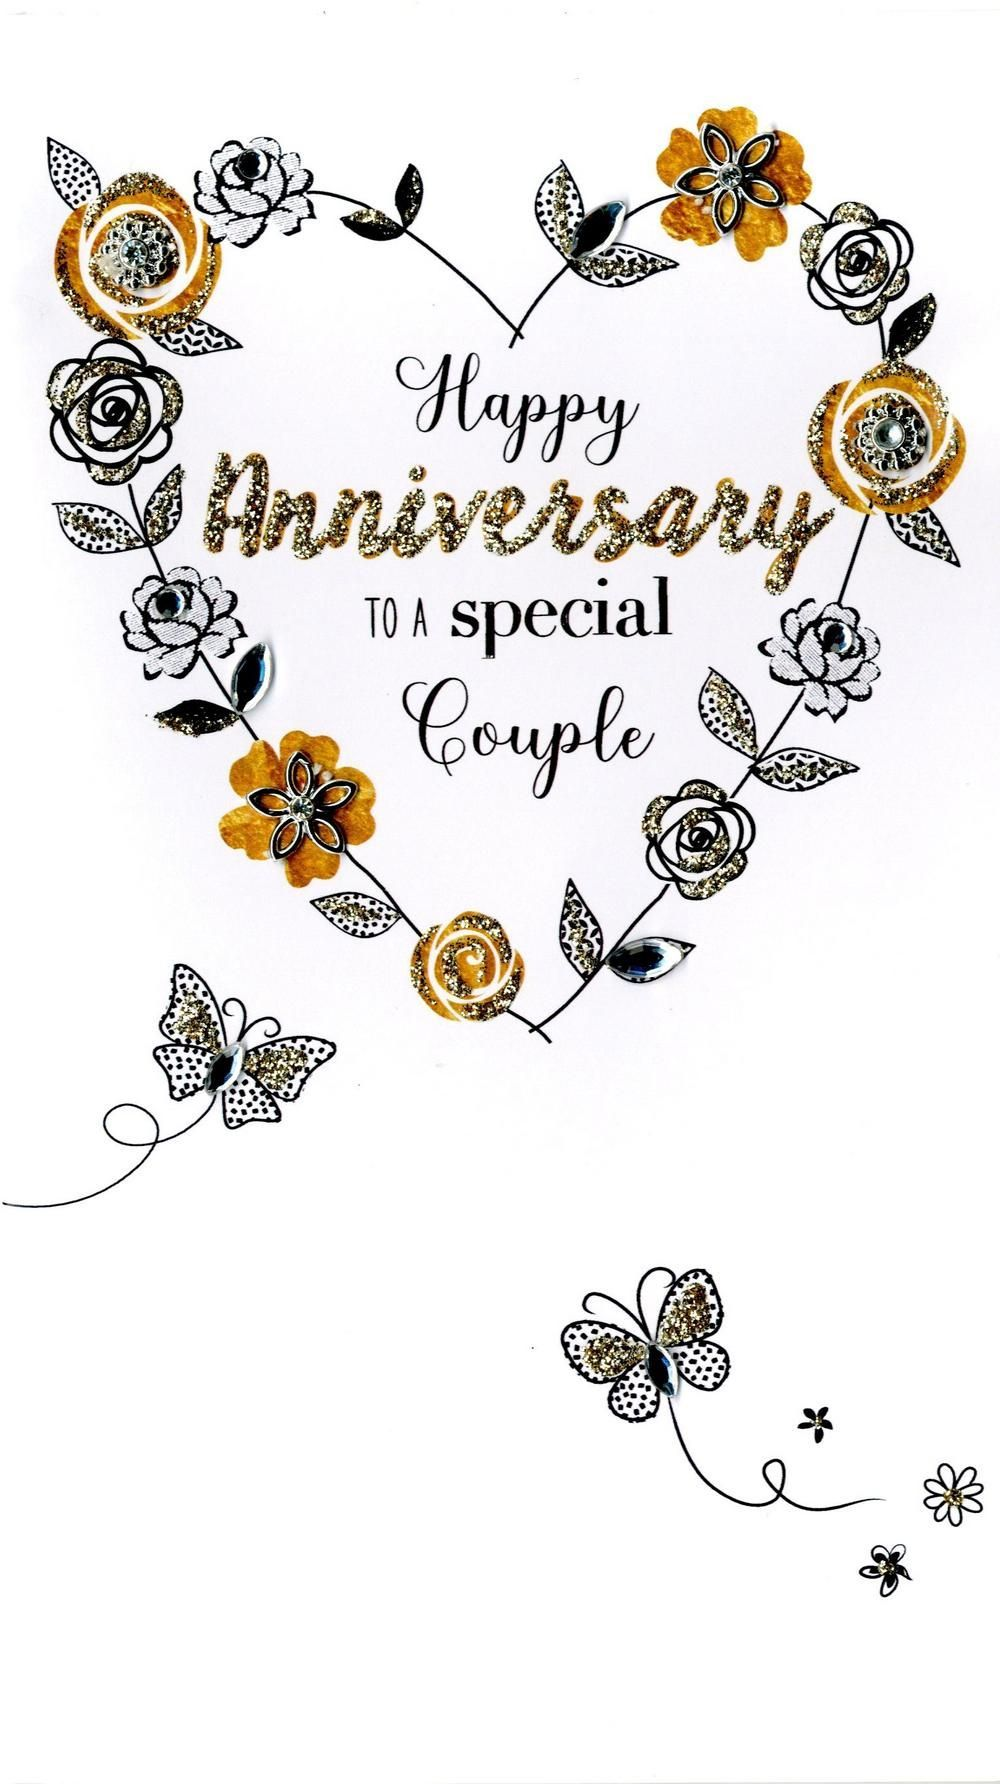 Happy Anniversary Discover Special Couple Anniversary Greeting Card Cards Happy Anniversary Cards Anniversary Greeting Cards Anniversary Cards For Couple